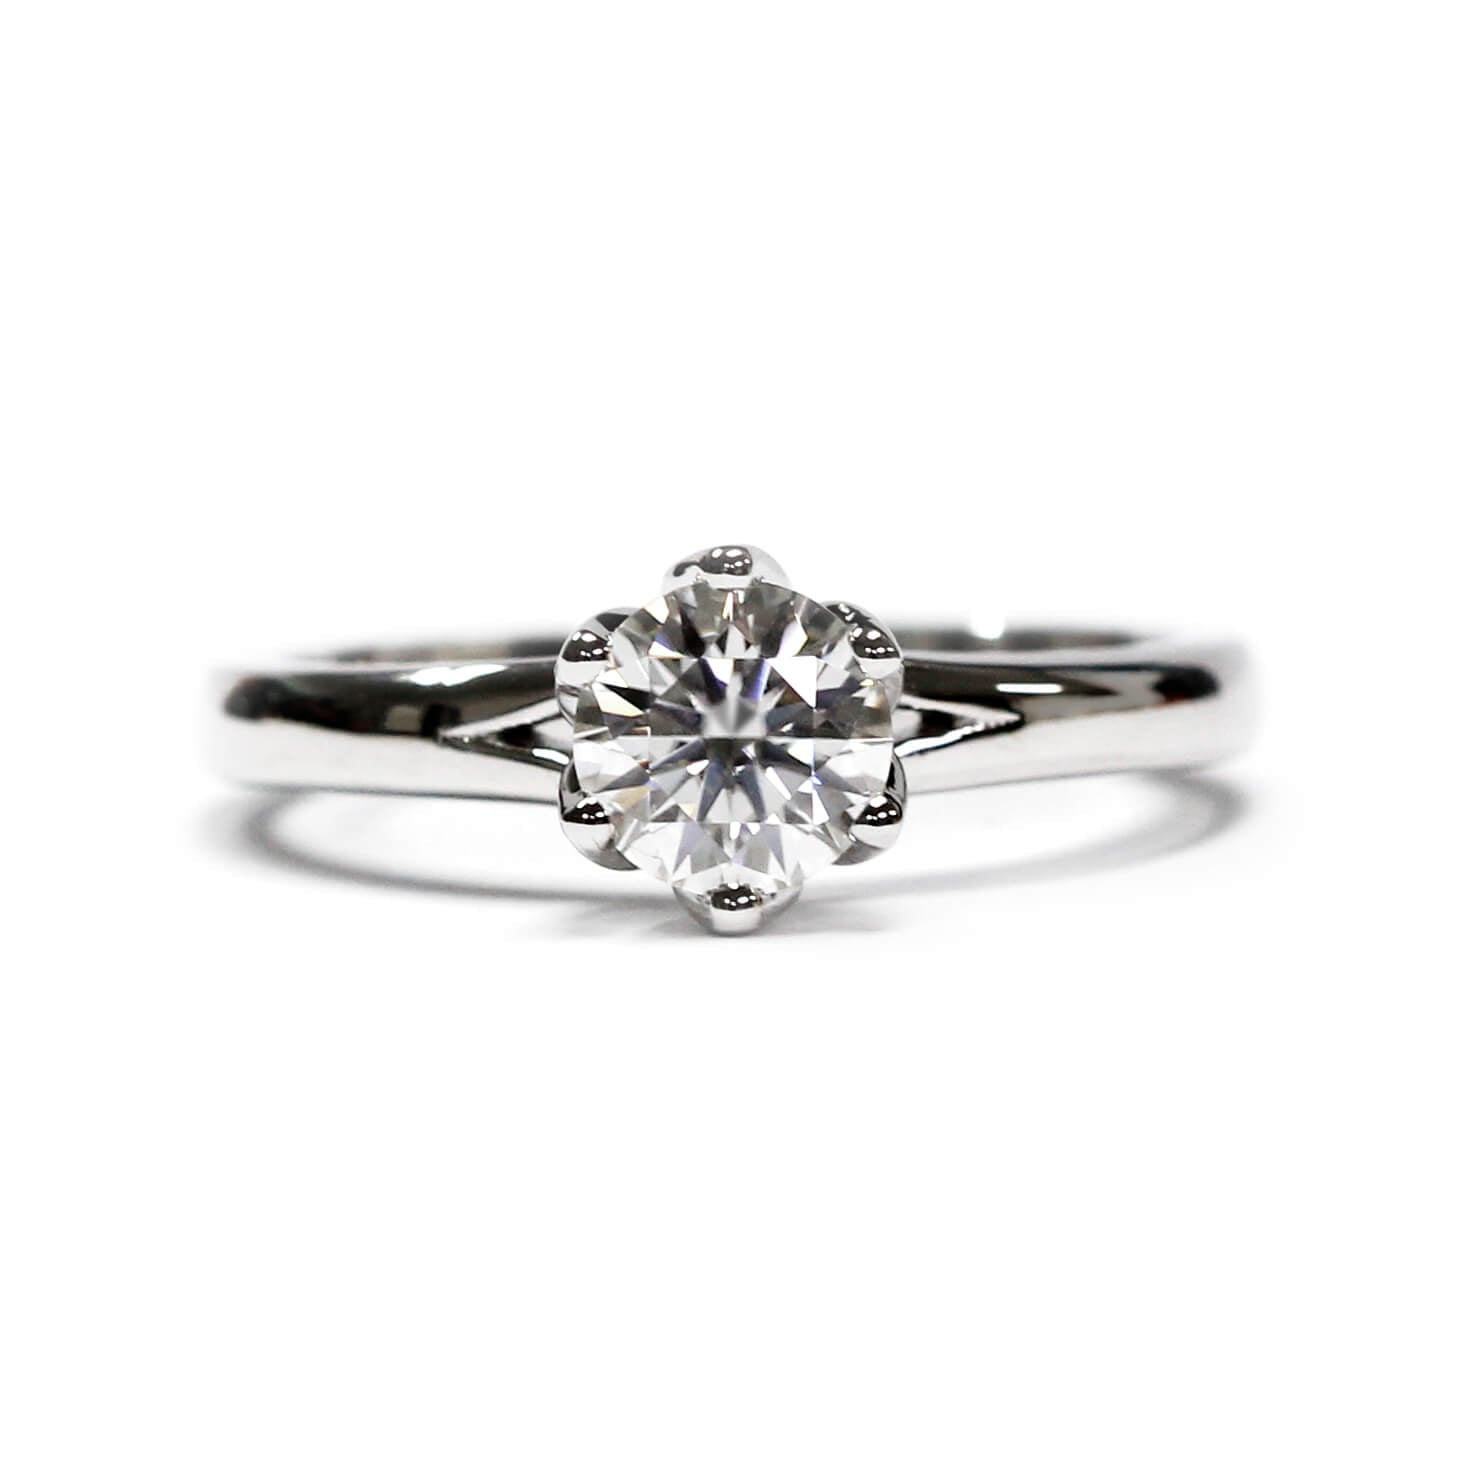 Eleanor 1 Carat Moissanite Solitaire with Flower Petal Setting - LeCaine Gems